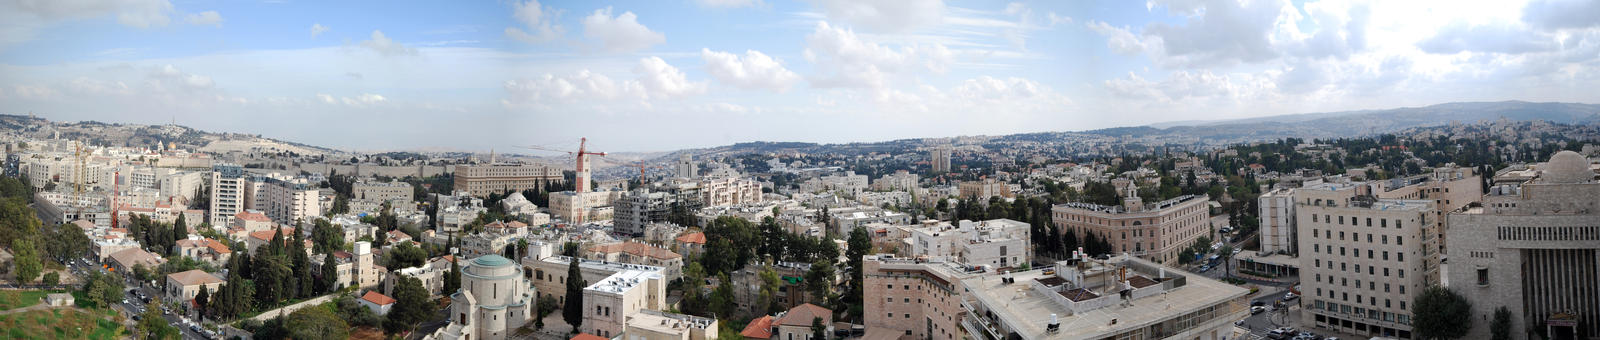 Jerusalem Panorama 2010, 1 by dpt56